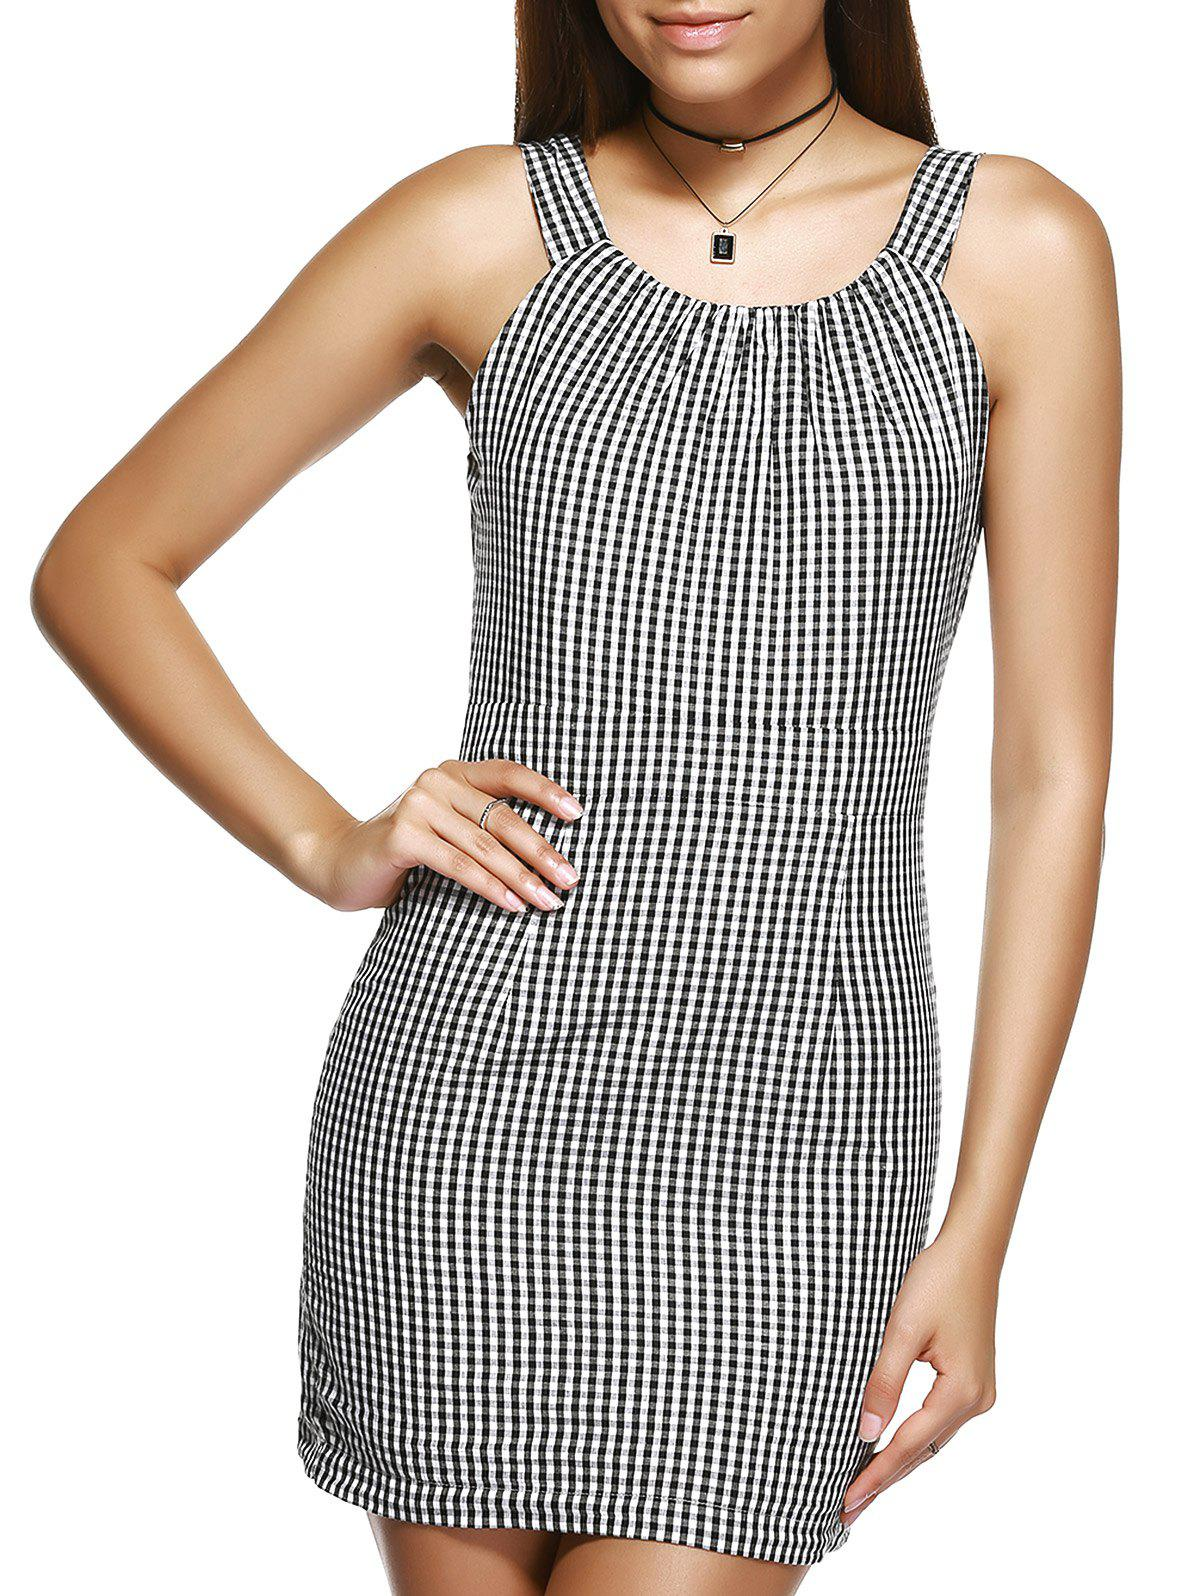 Refreshing Women's Strappy Checked Slimming Mini Dress - CHECKED L